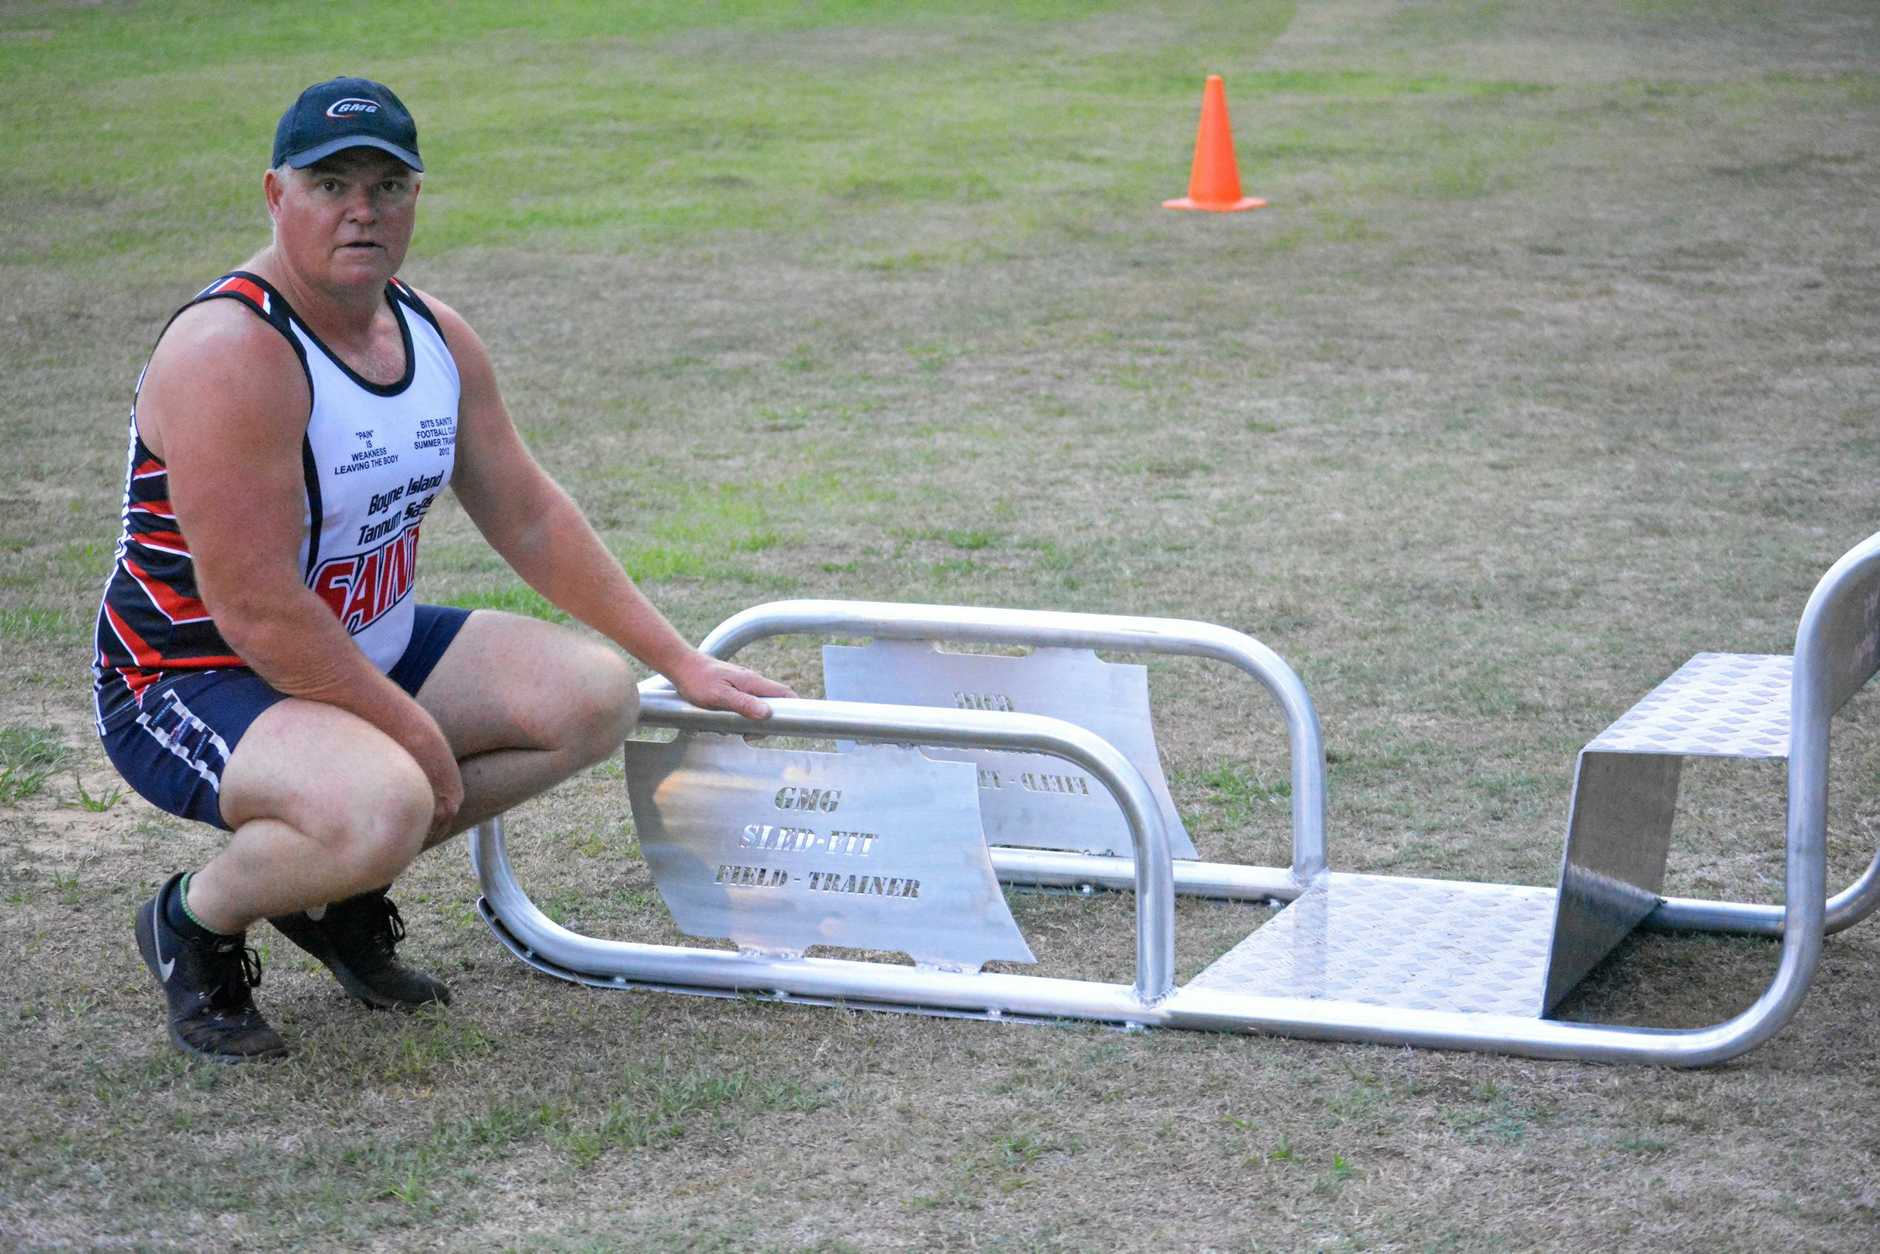 SIMPLE, BUT EFFECTIVE: Alan Watkin with his self-designed Sled-Fit Field Trainer.